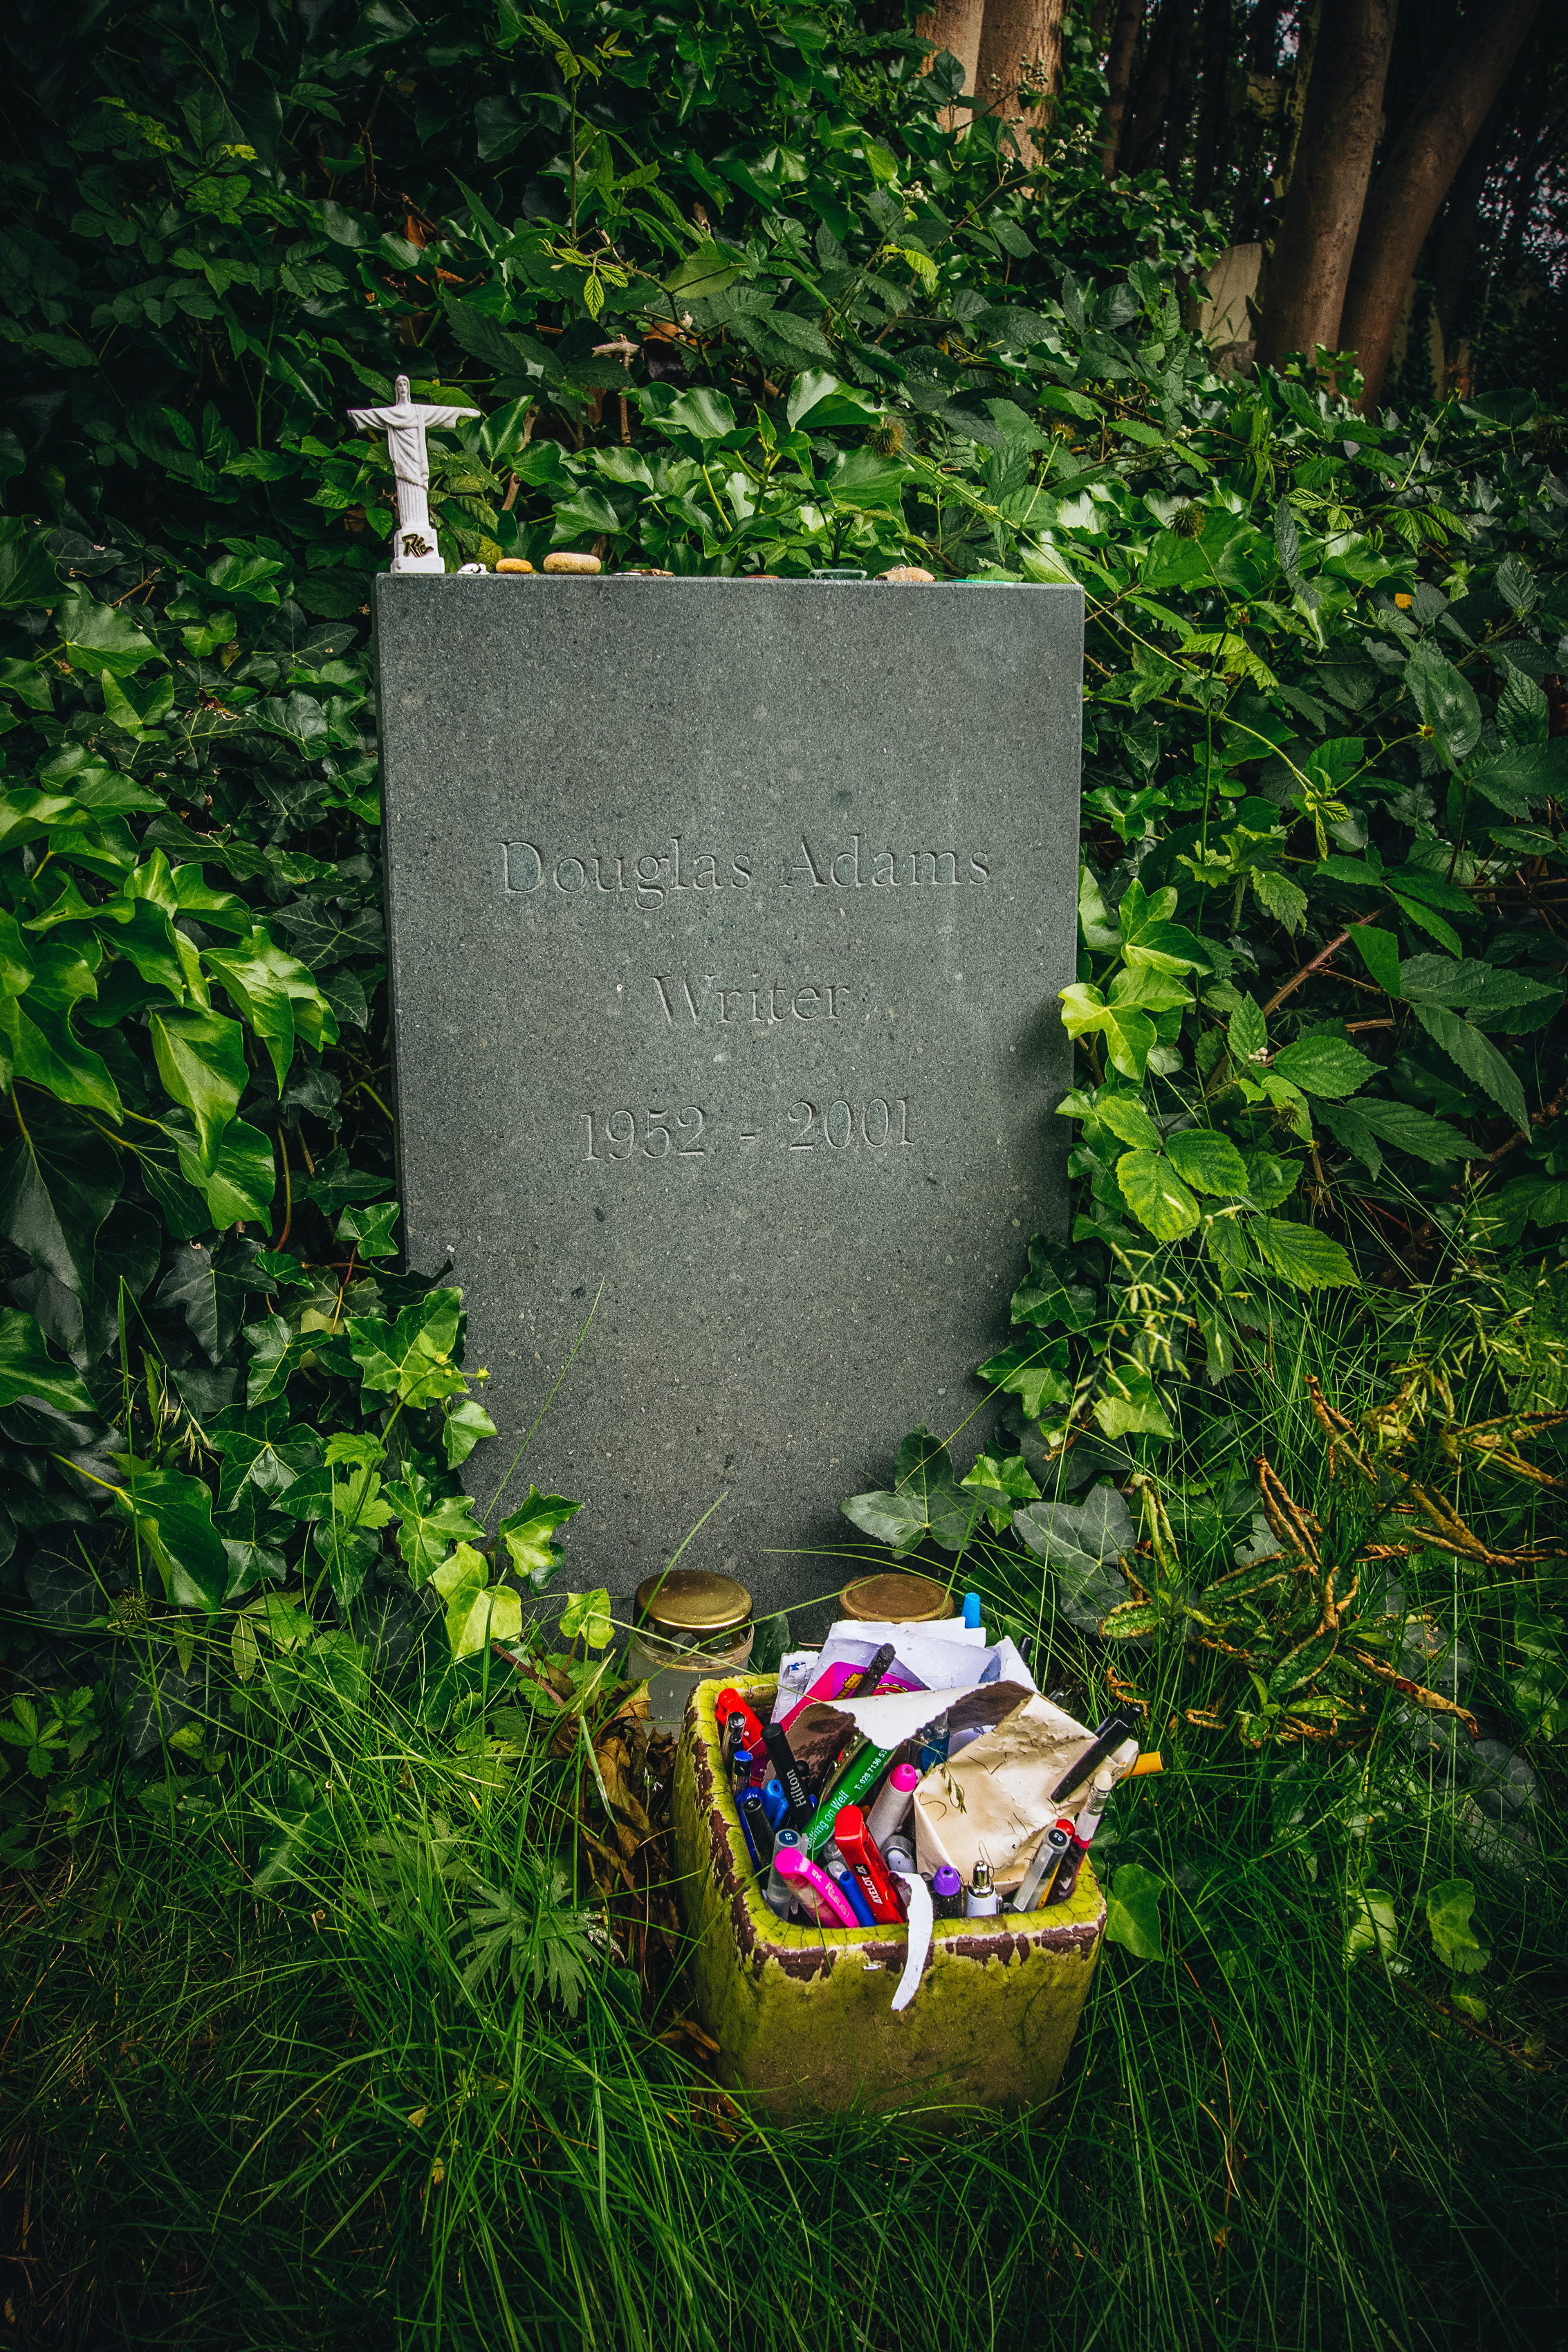 The gravestone of author Douglas Adams. There were a lot of people buried in Highgate (like Marx) but this one was neat with the people leaving pens.